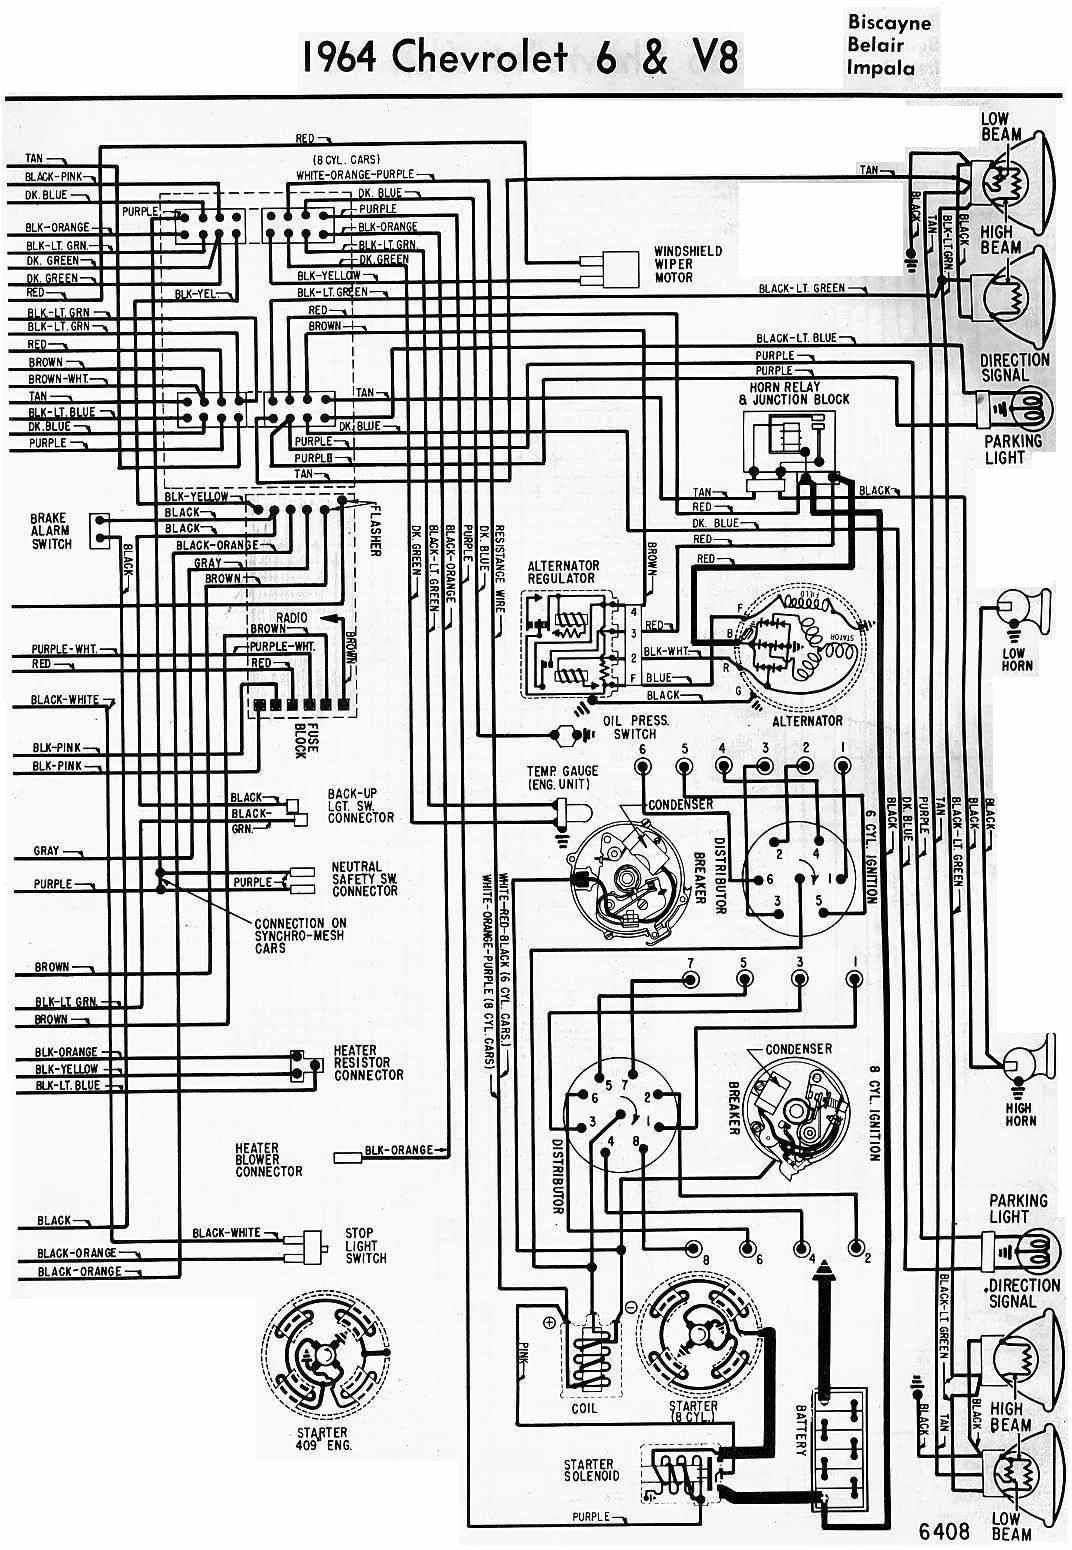 1963 Impala Turn Signal Wiring Diagram Symbol For Ground Electrical Of 1964 Chevrolet 6 And V8 All